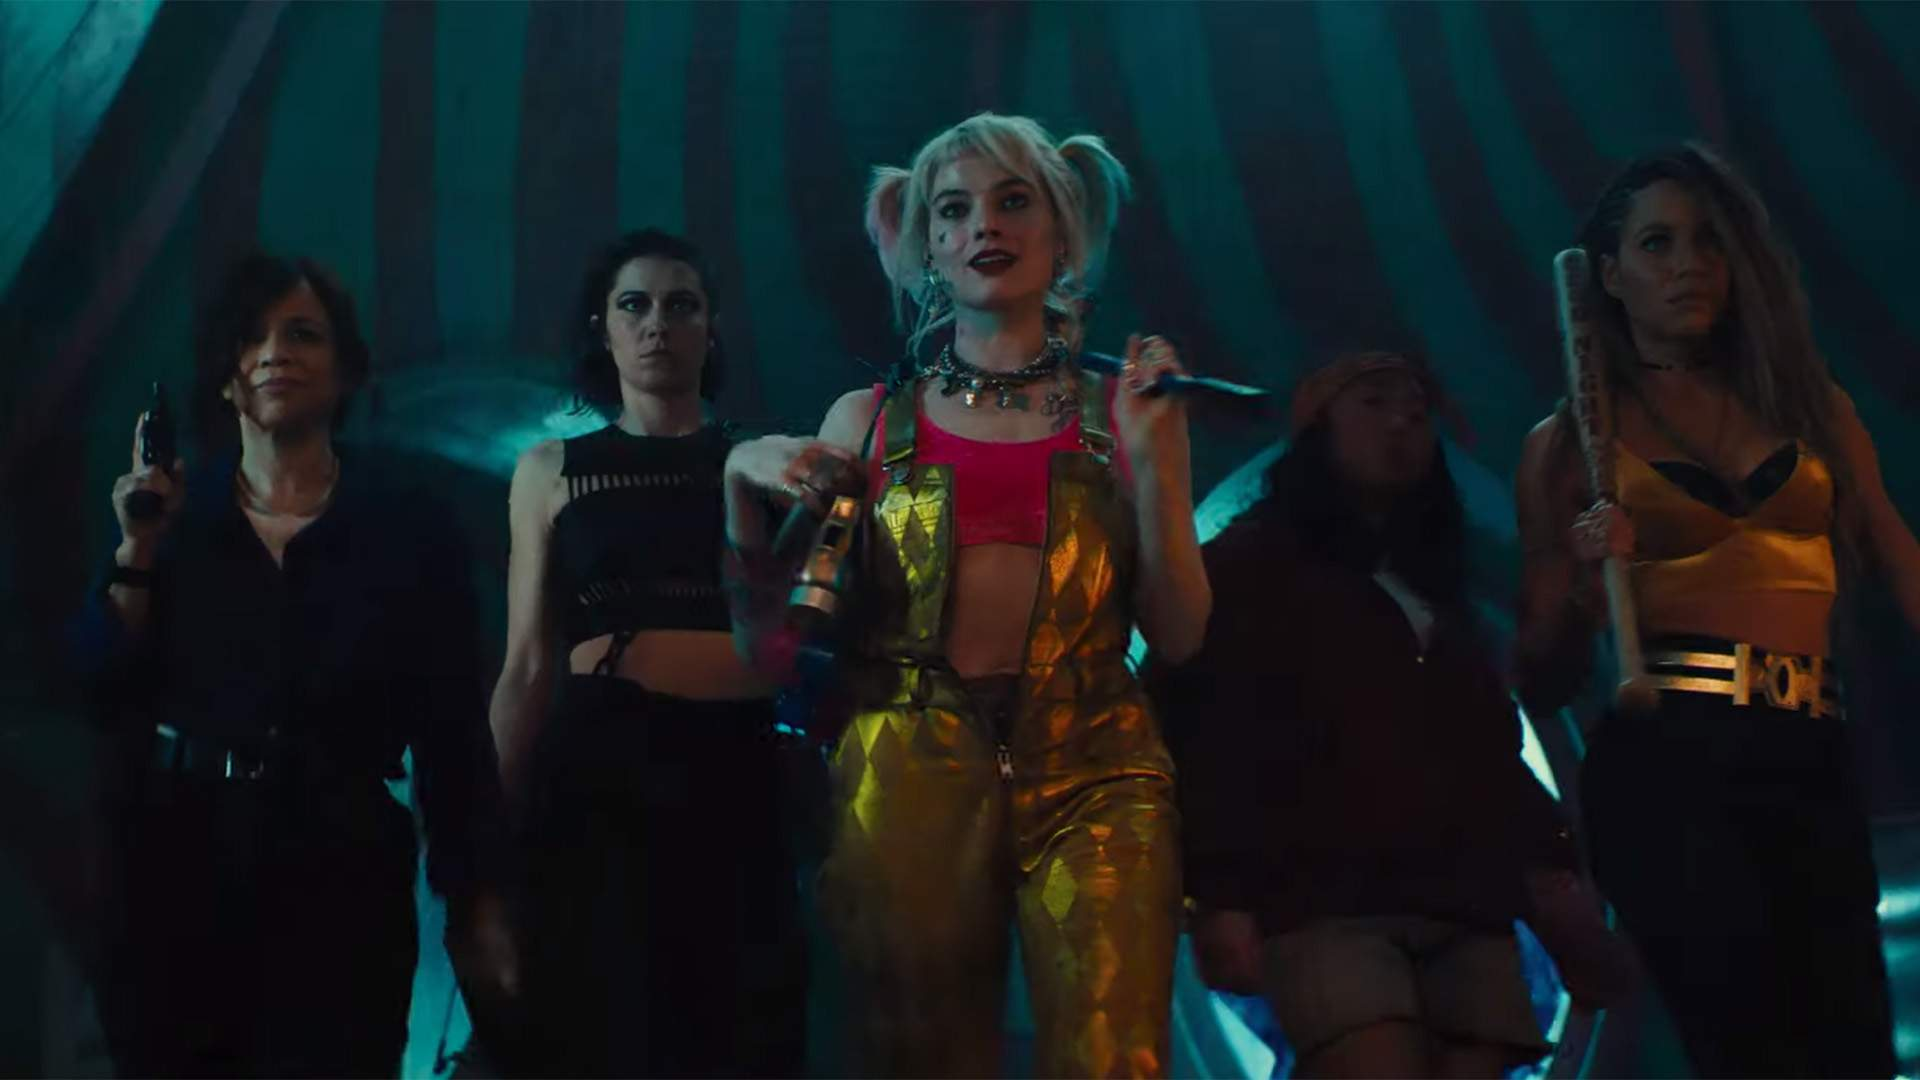 Margot Robbie Returns as Harley Quinn in the Trailer for Her Own 'Suicide Squad' Spin-Off